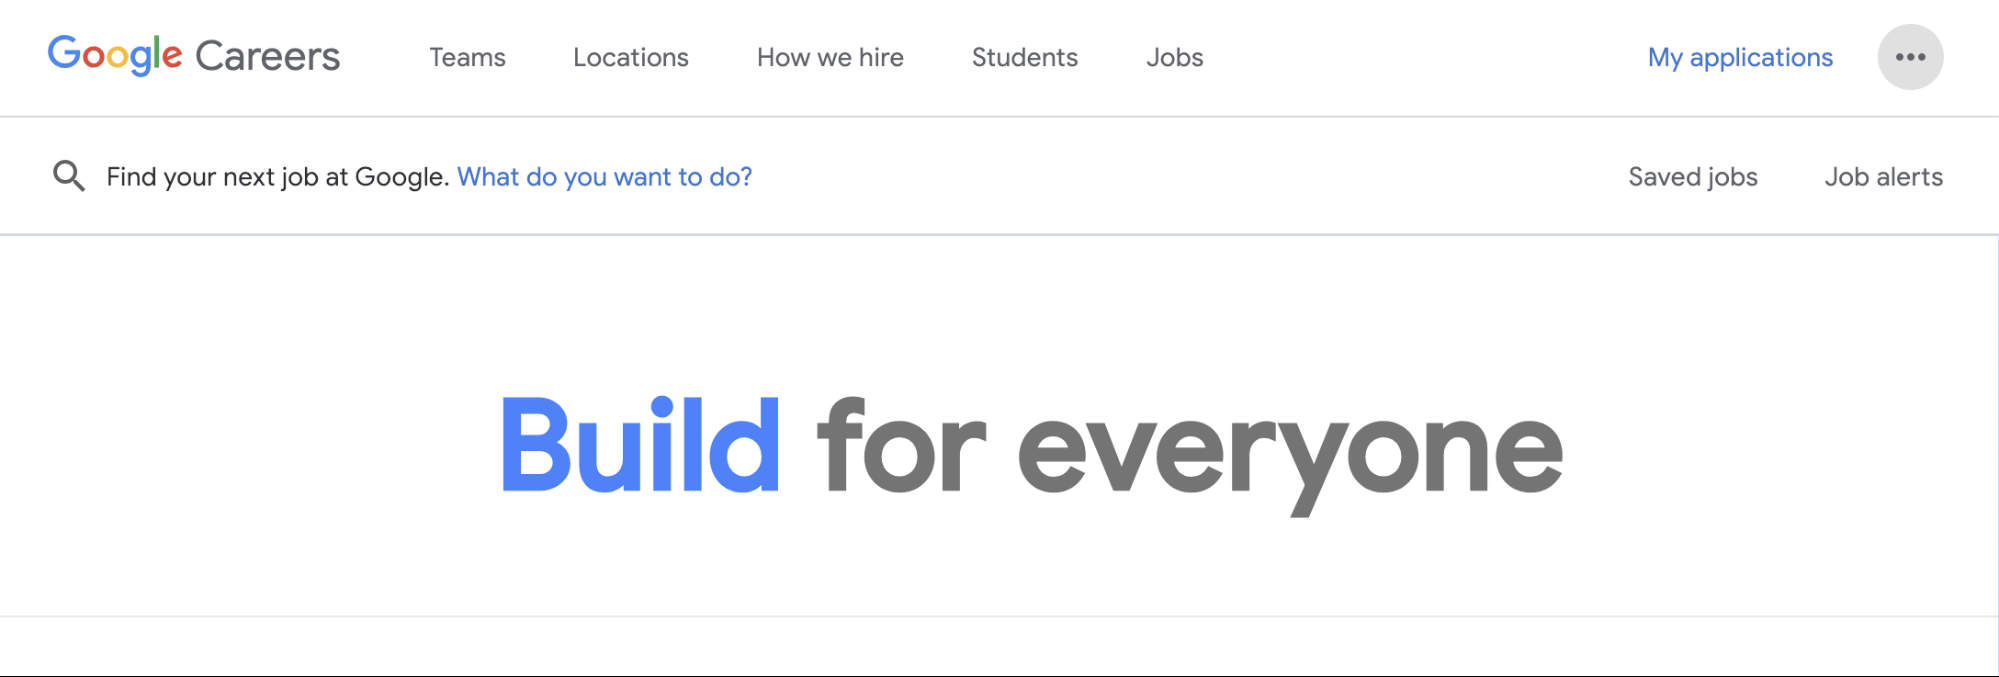 "Google's tagline ""Build for everyone"" is a great employer brand example."